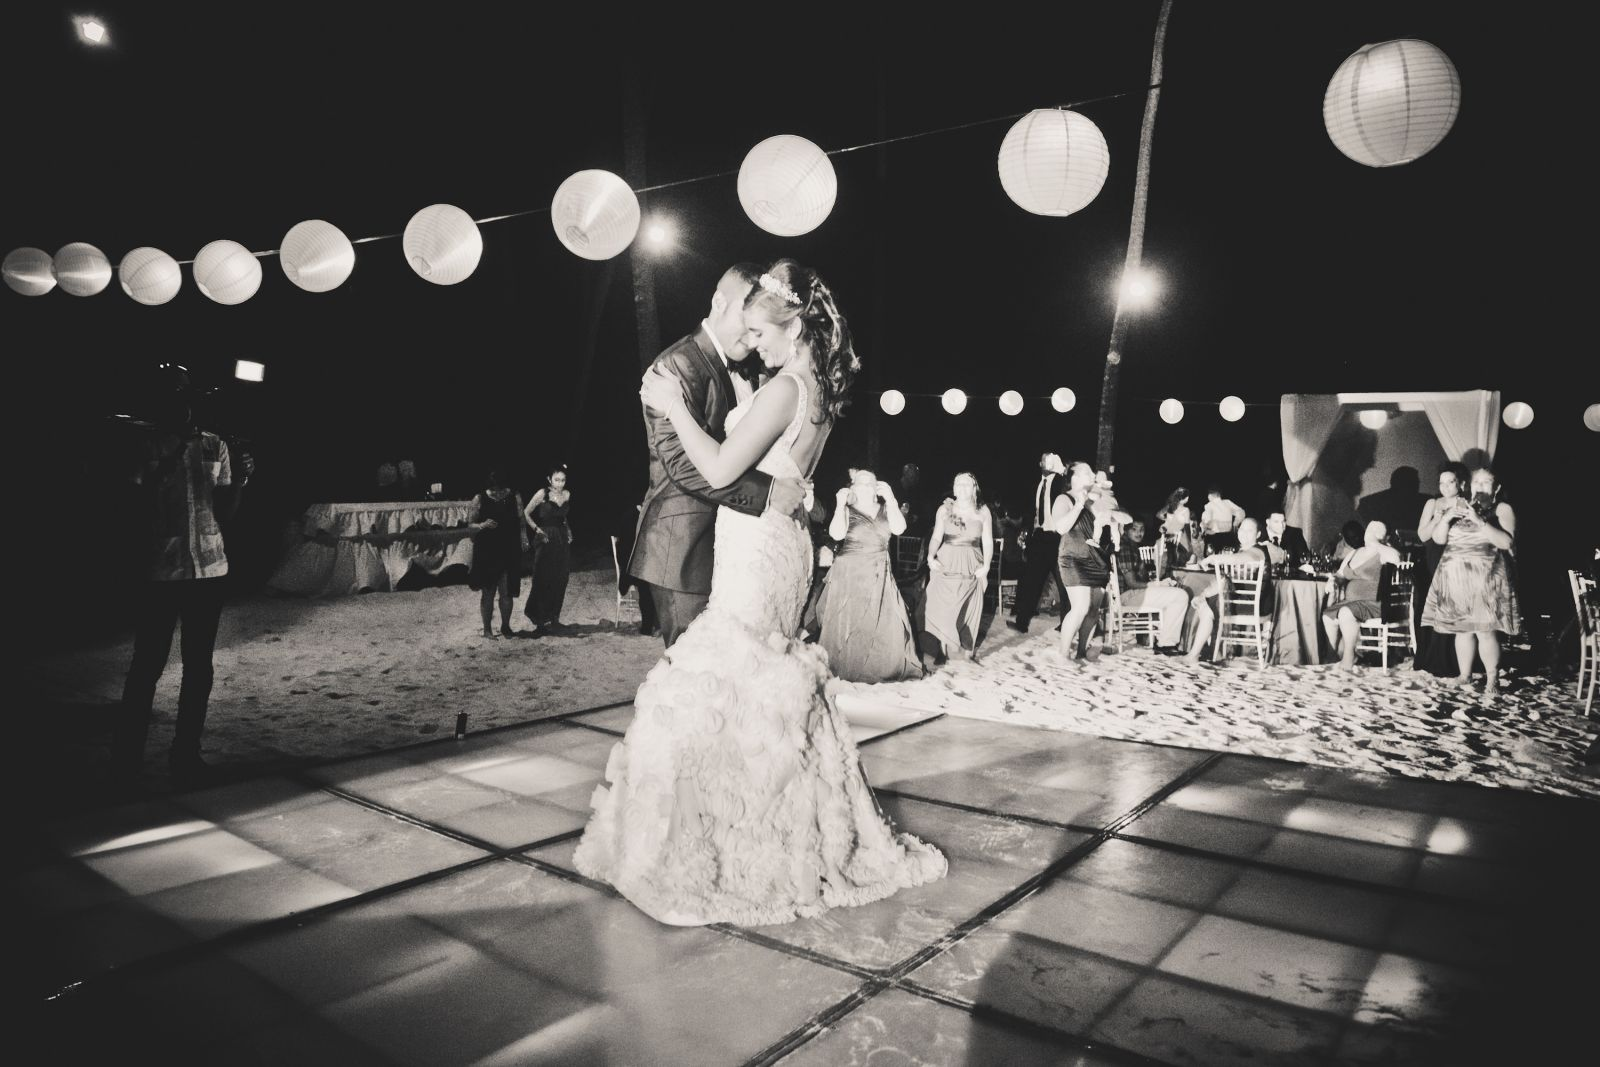 Our first dance